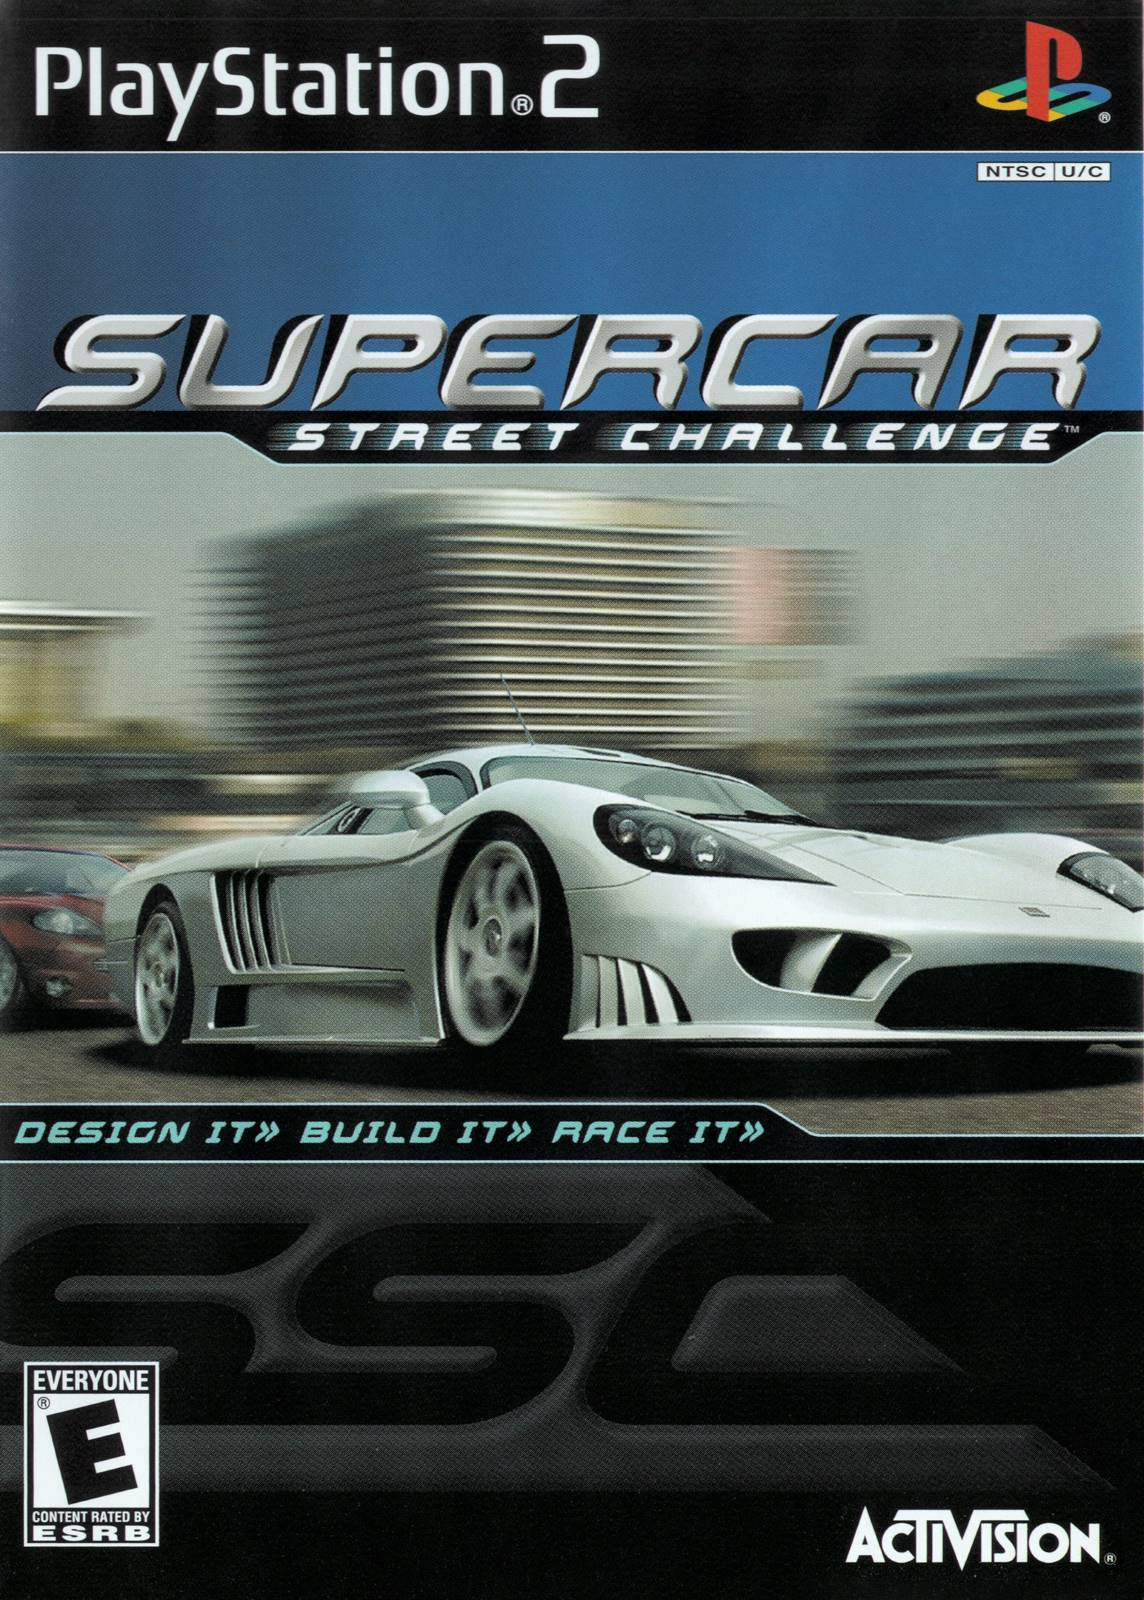 Supercar Street Challenge Sony Playstation 2 Game